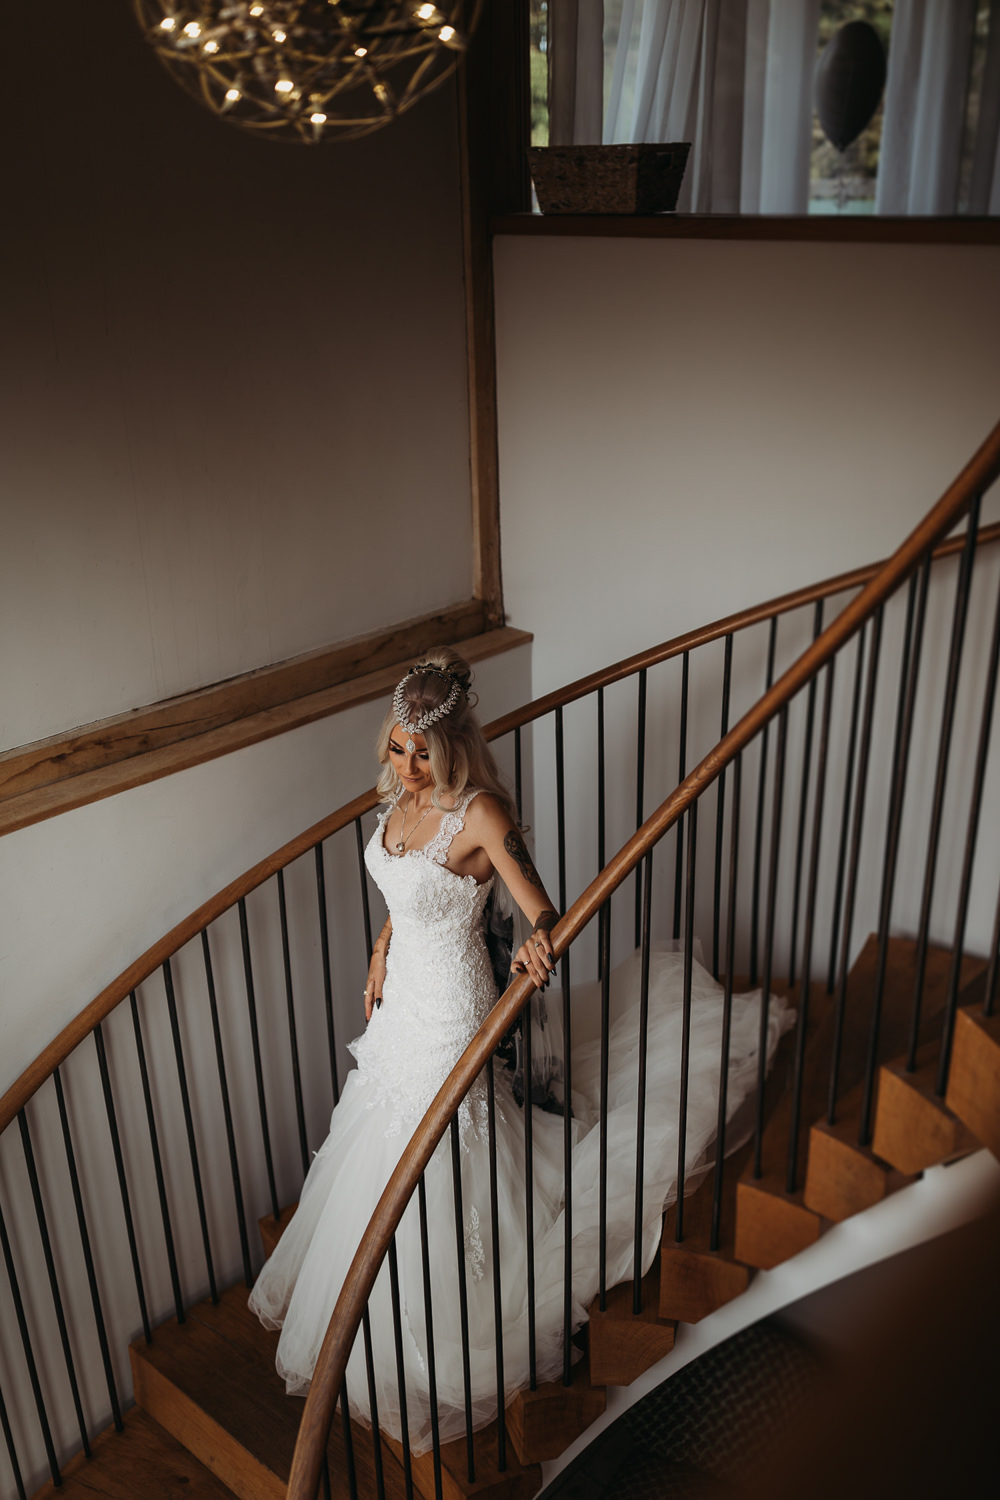 Bride Bridal Dress Gown Mermaid Train Lace Cooling Castle Barn Wedding Thyme Lane Photography